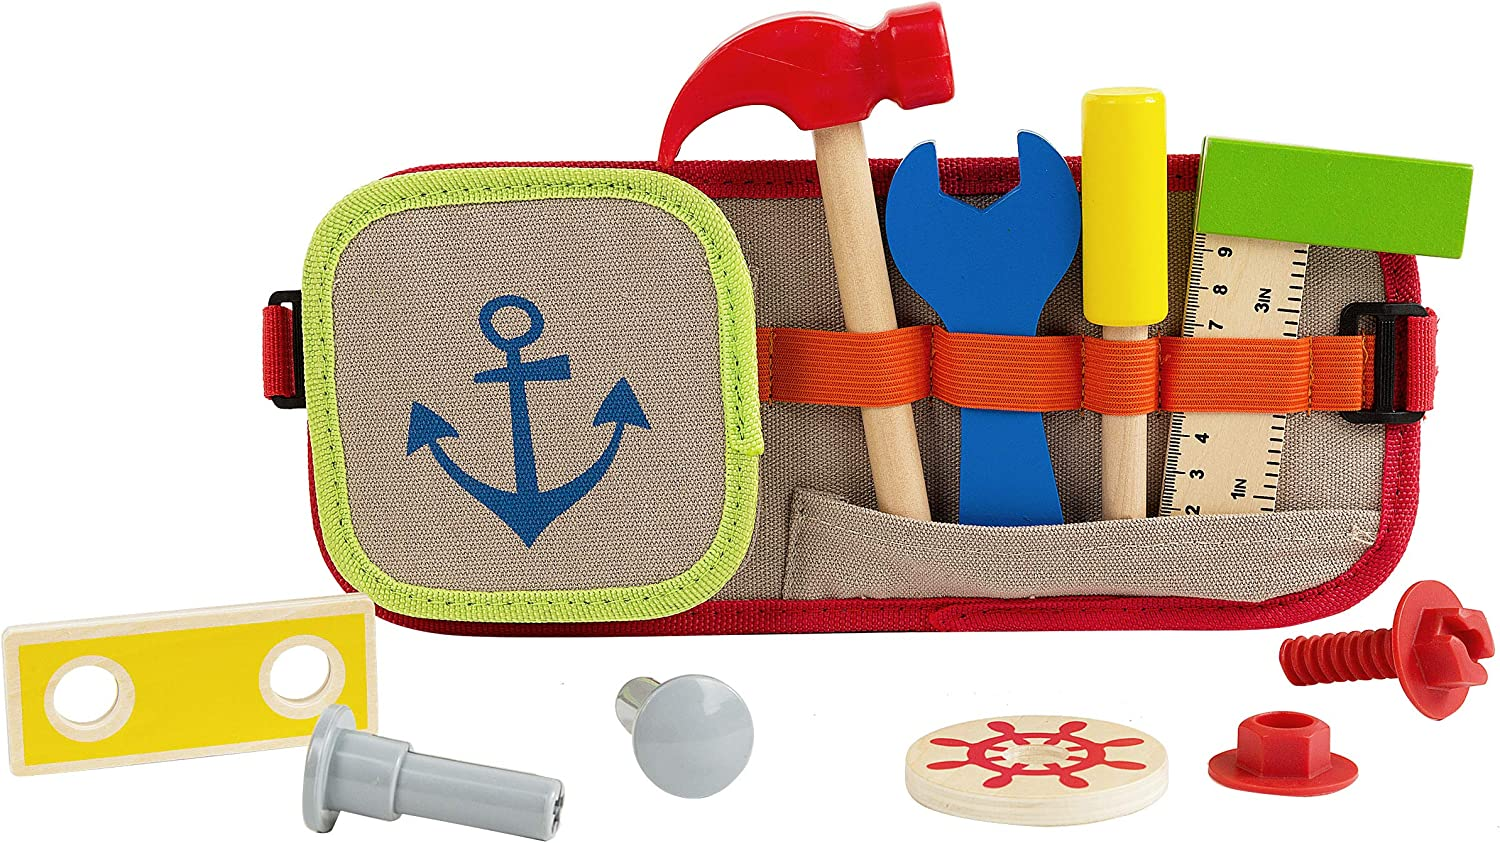 Tool Belt Set for Kids 4 Wooden Building Max 80% OFF 8 Construction Cheap sale Tools